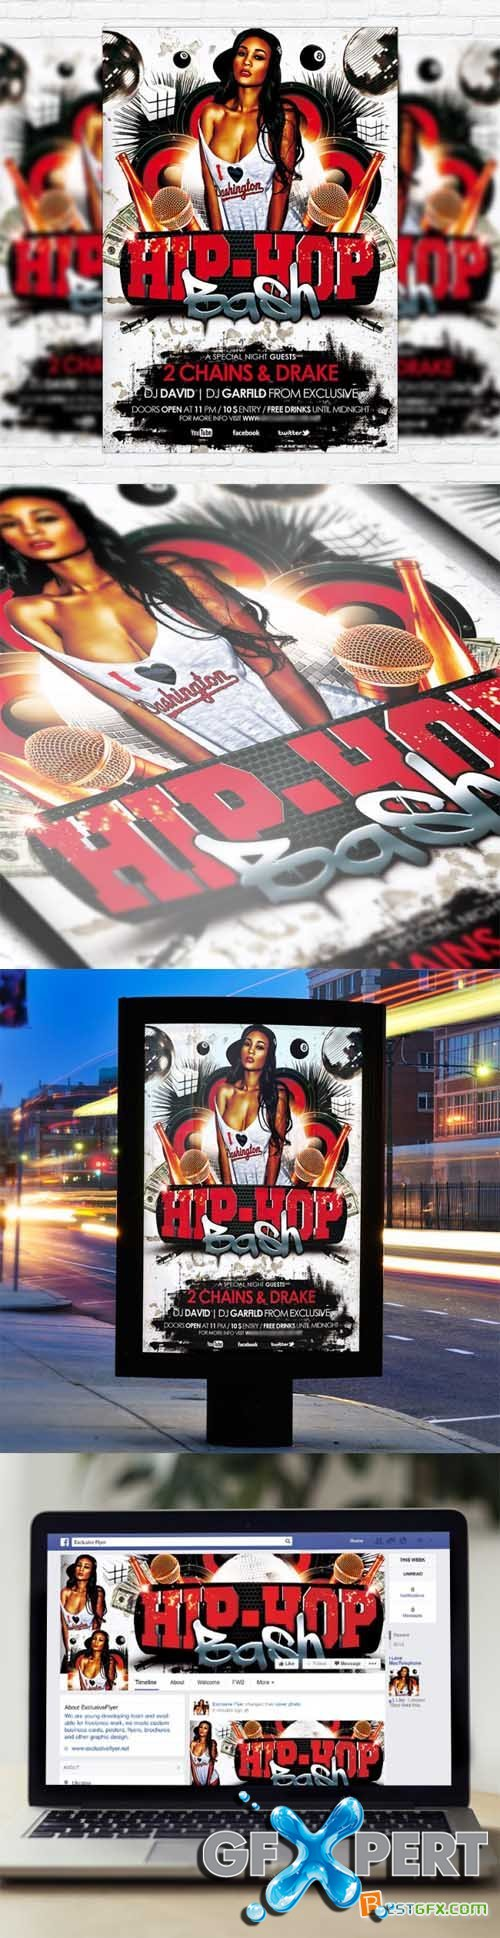 Flyer Template - Hip Hop Bash + Facebook Cover